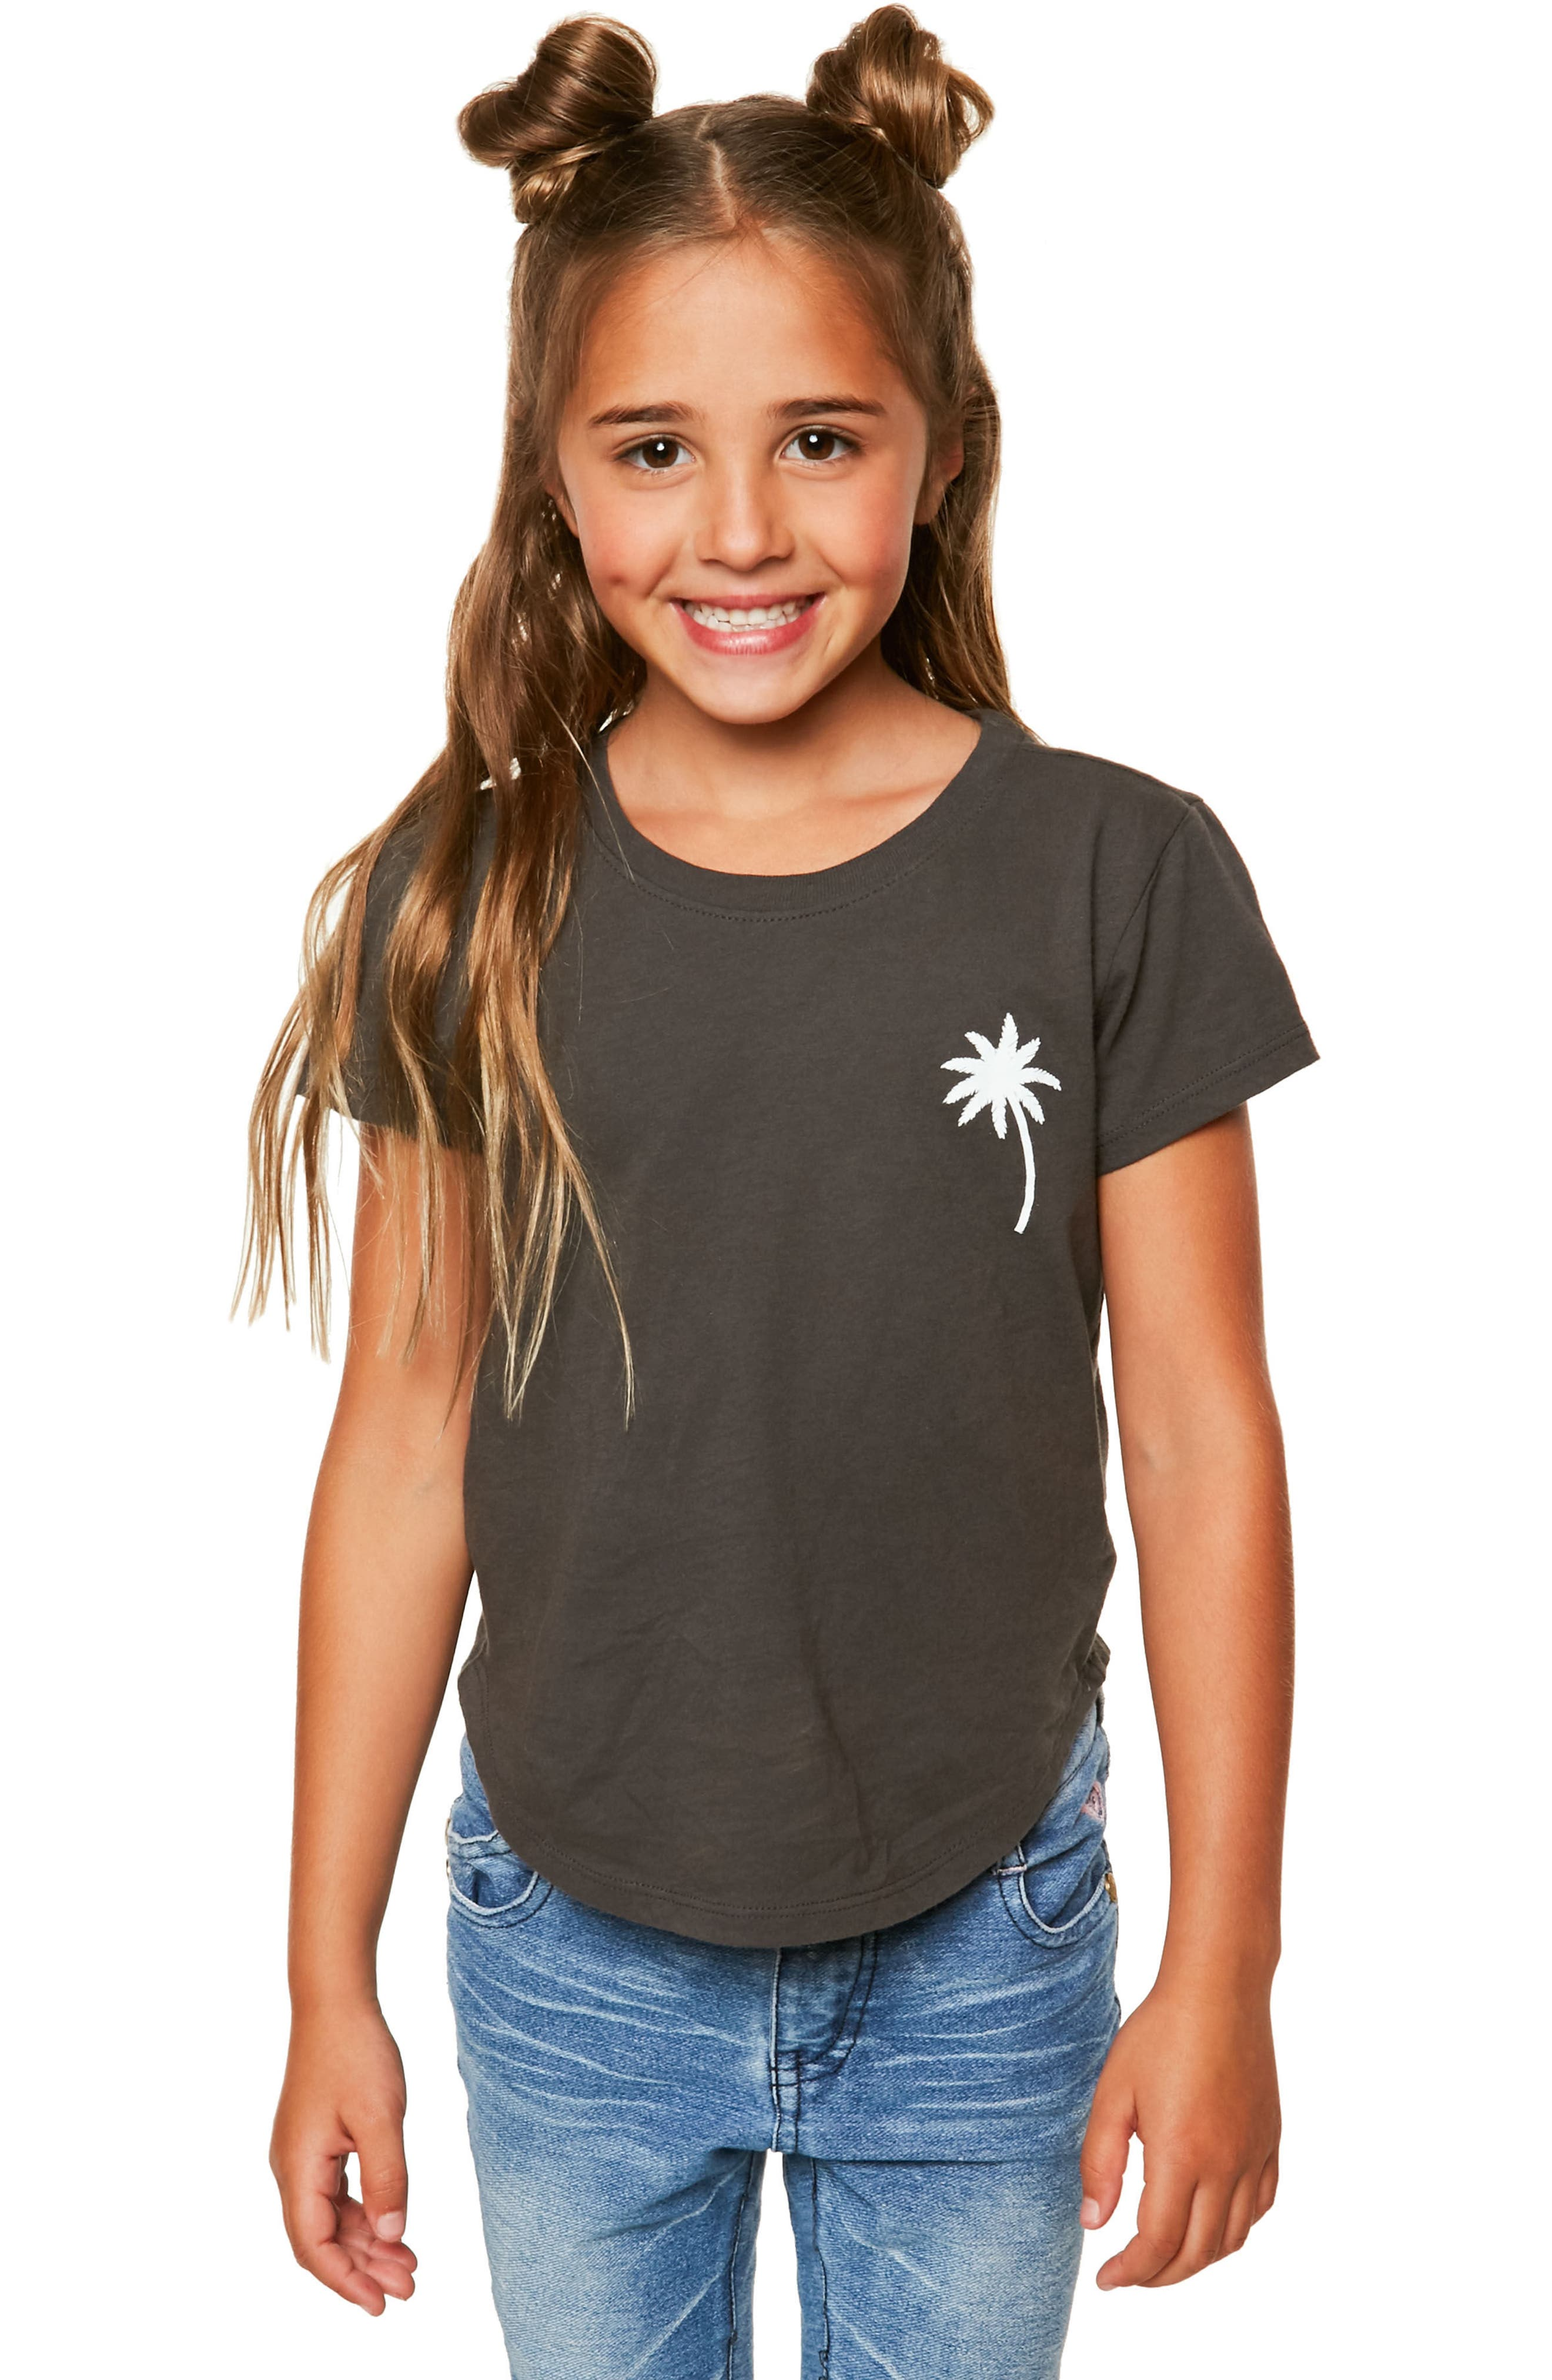 Sunup Graphic Print Tee,                             Main thumbnail 1, color,                             Washed Black - Fad